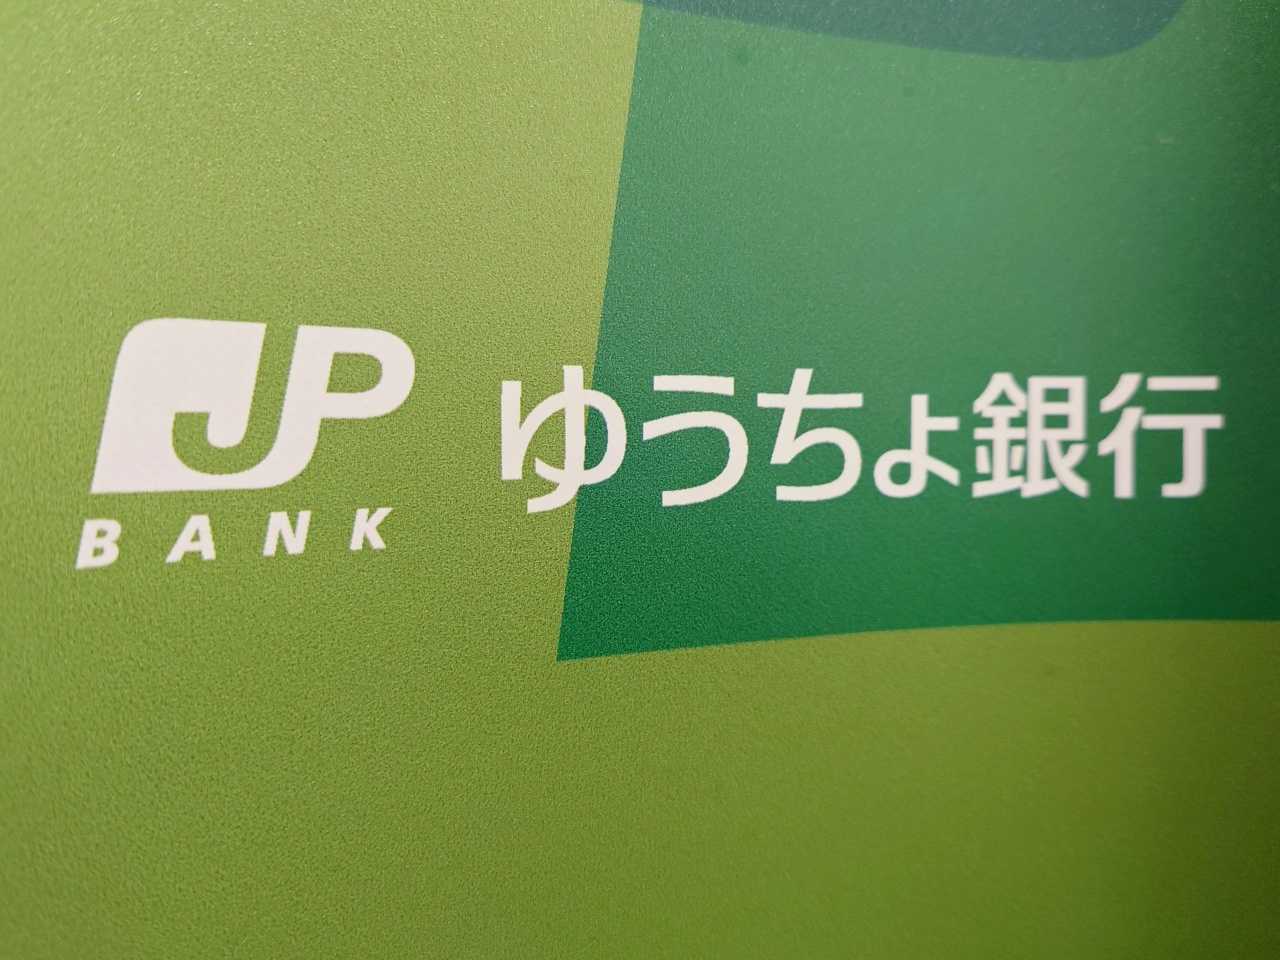 Japan Post Bank Company